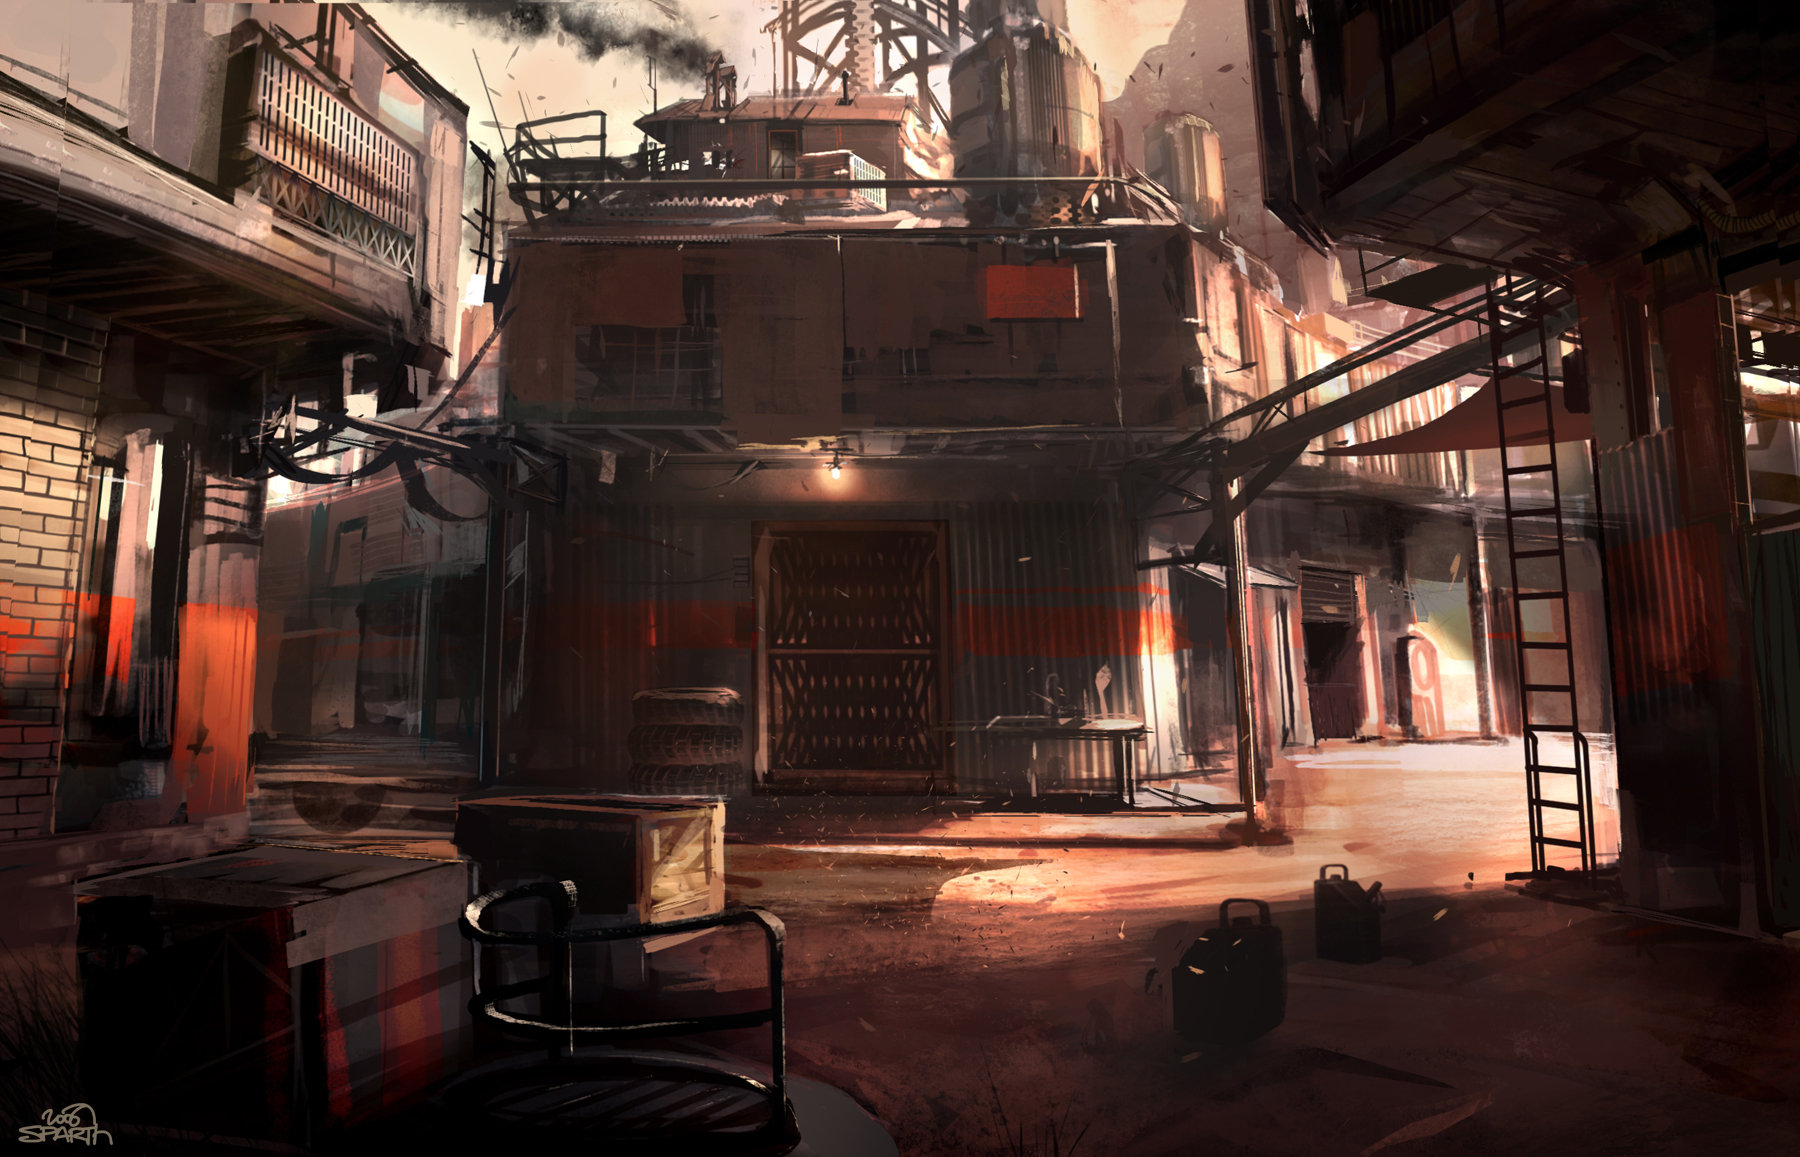 Rage   sparth  idsoftware   wellsprings streets 2